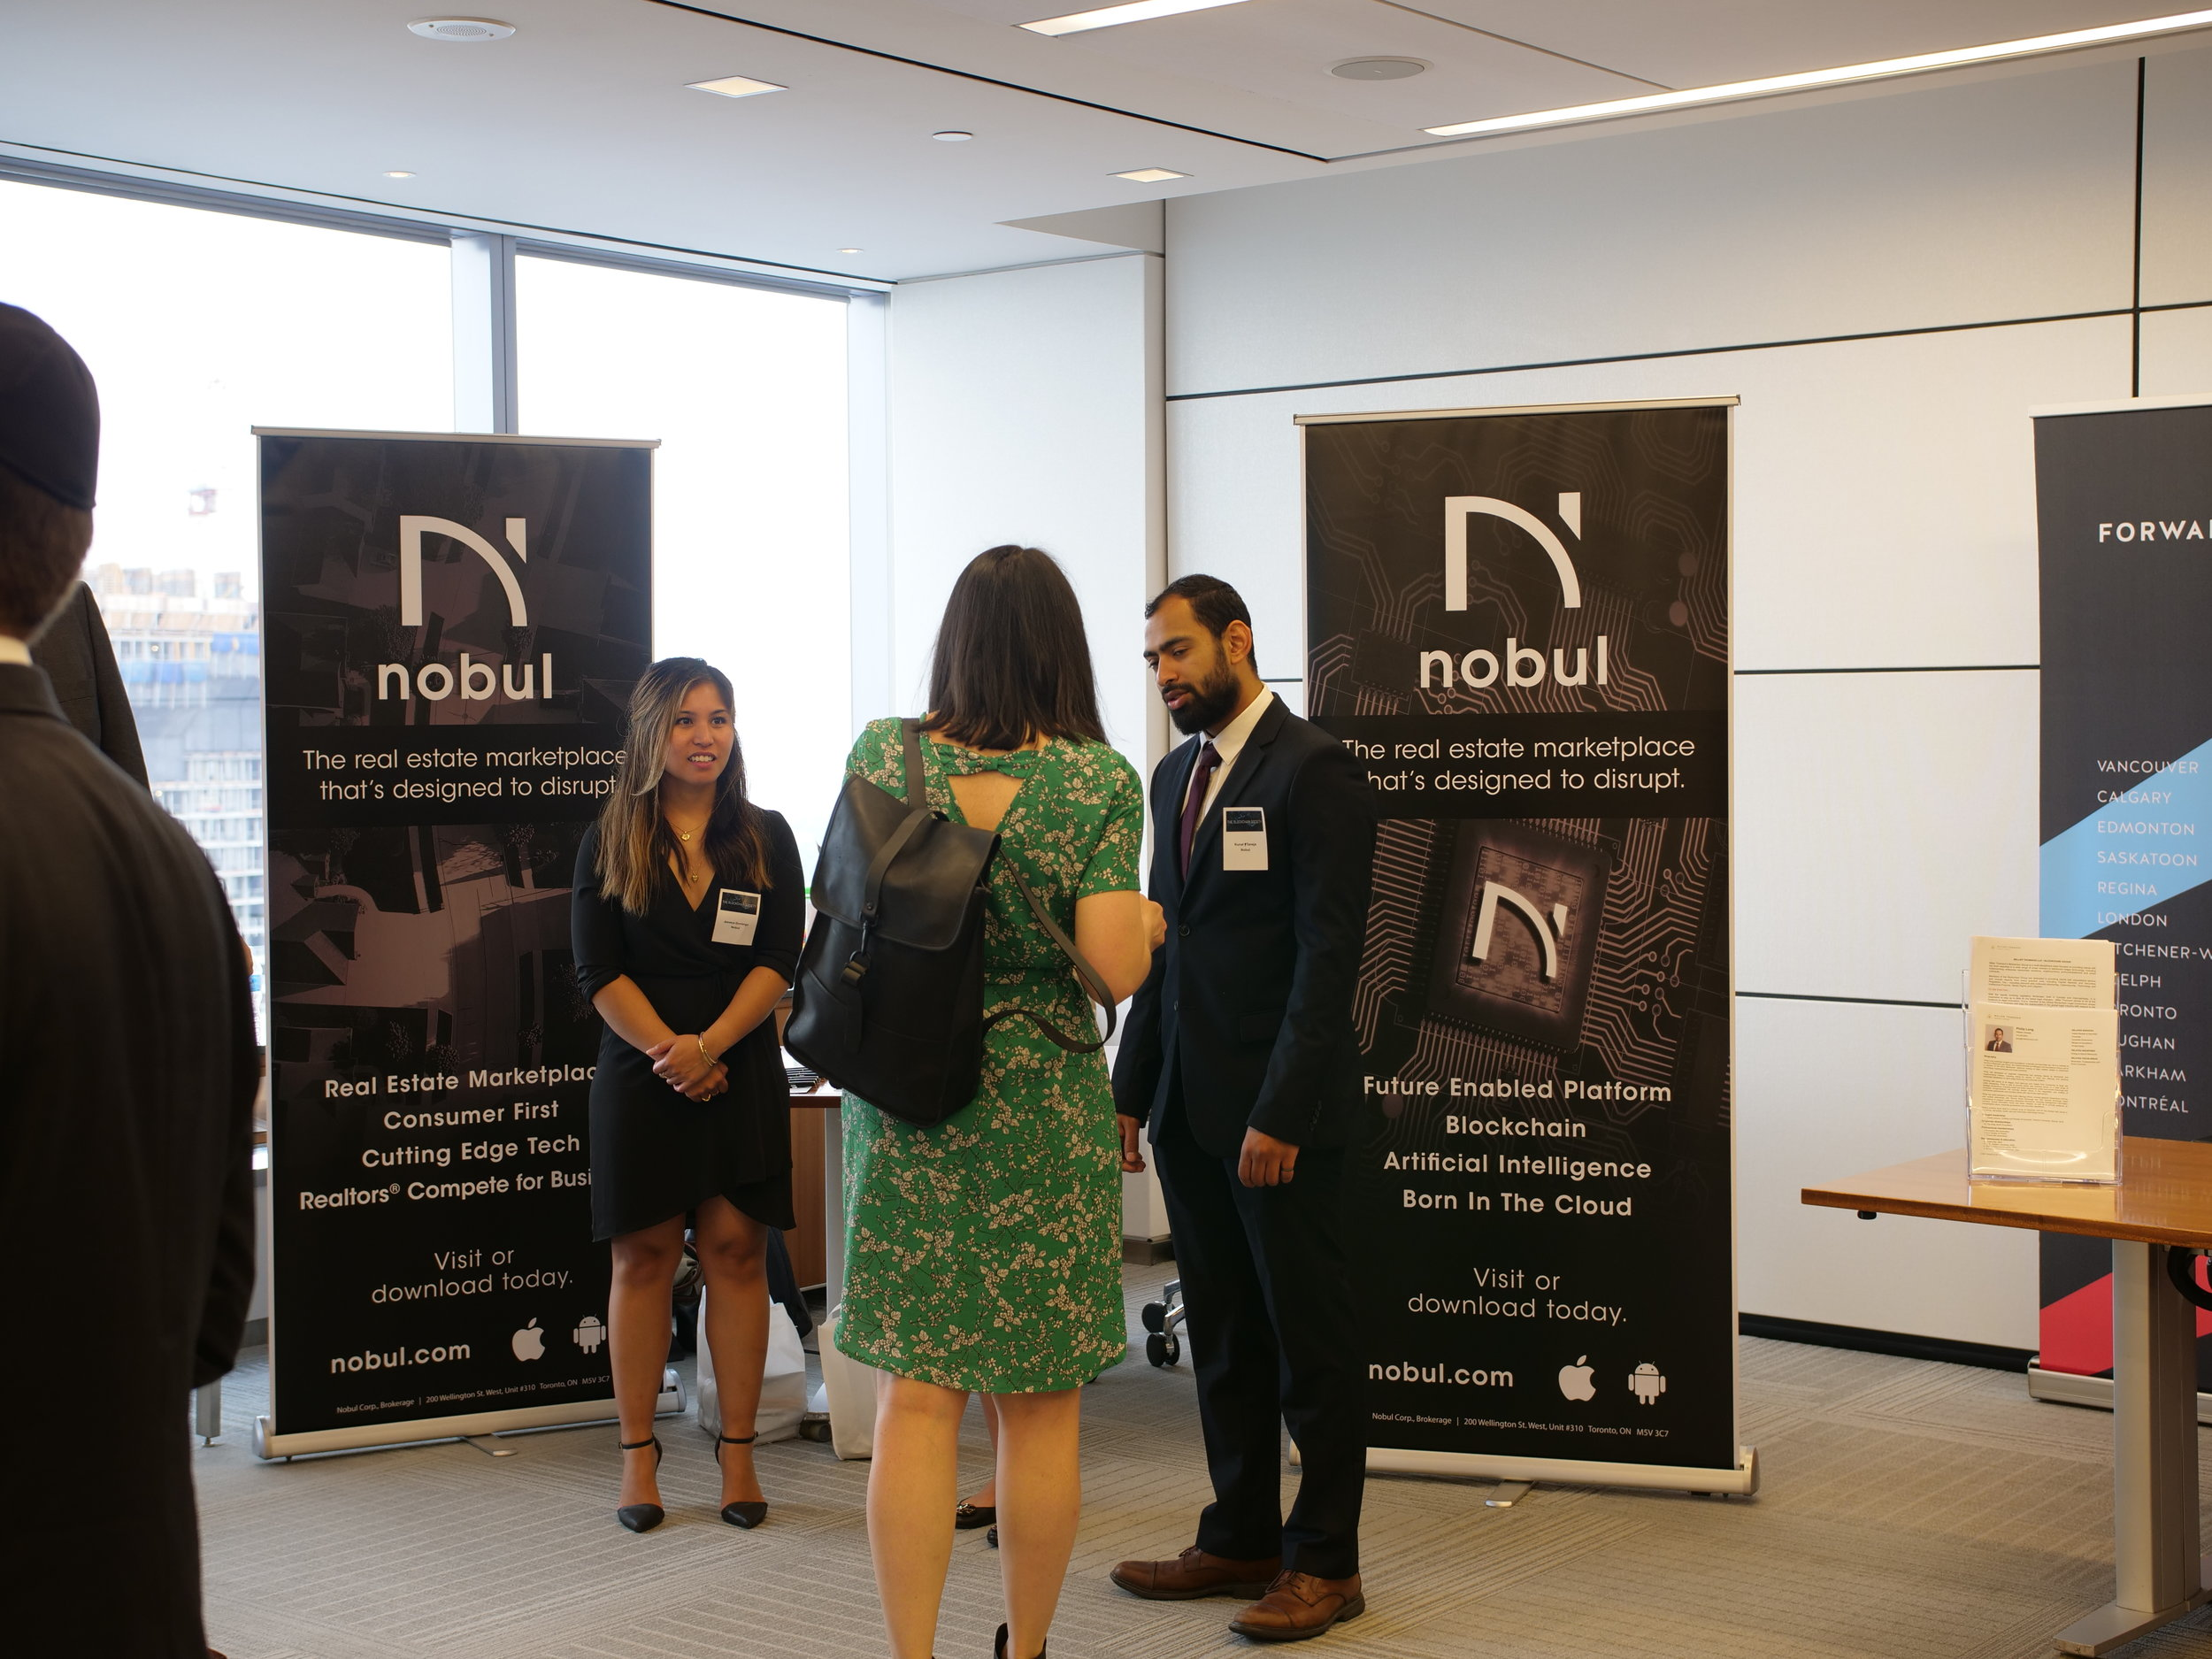 - The conference was held at KPMG office in downtown Toronto and kicked off with coffee and deal making. One of the rooms was used as an Exhibitors and Deal Making lounge where attendees could meet exhibitors or discuss transactions with other conference attendees.